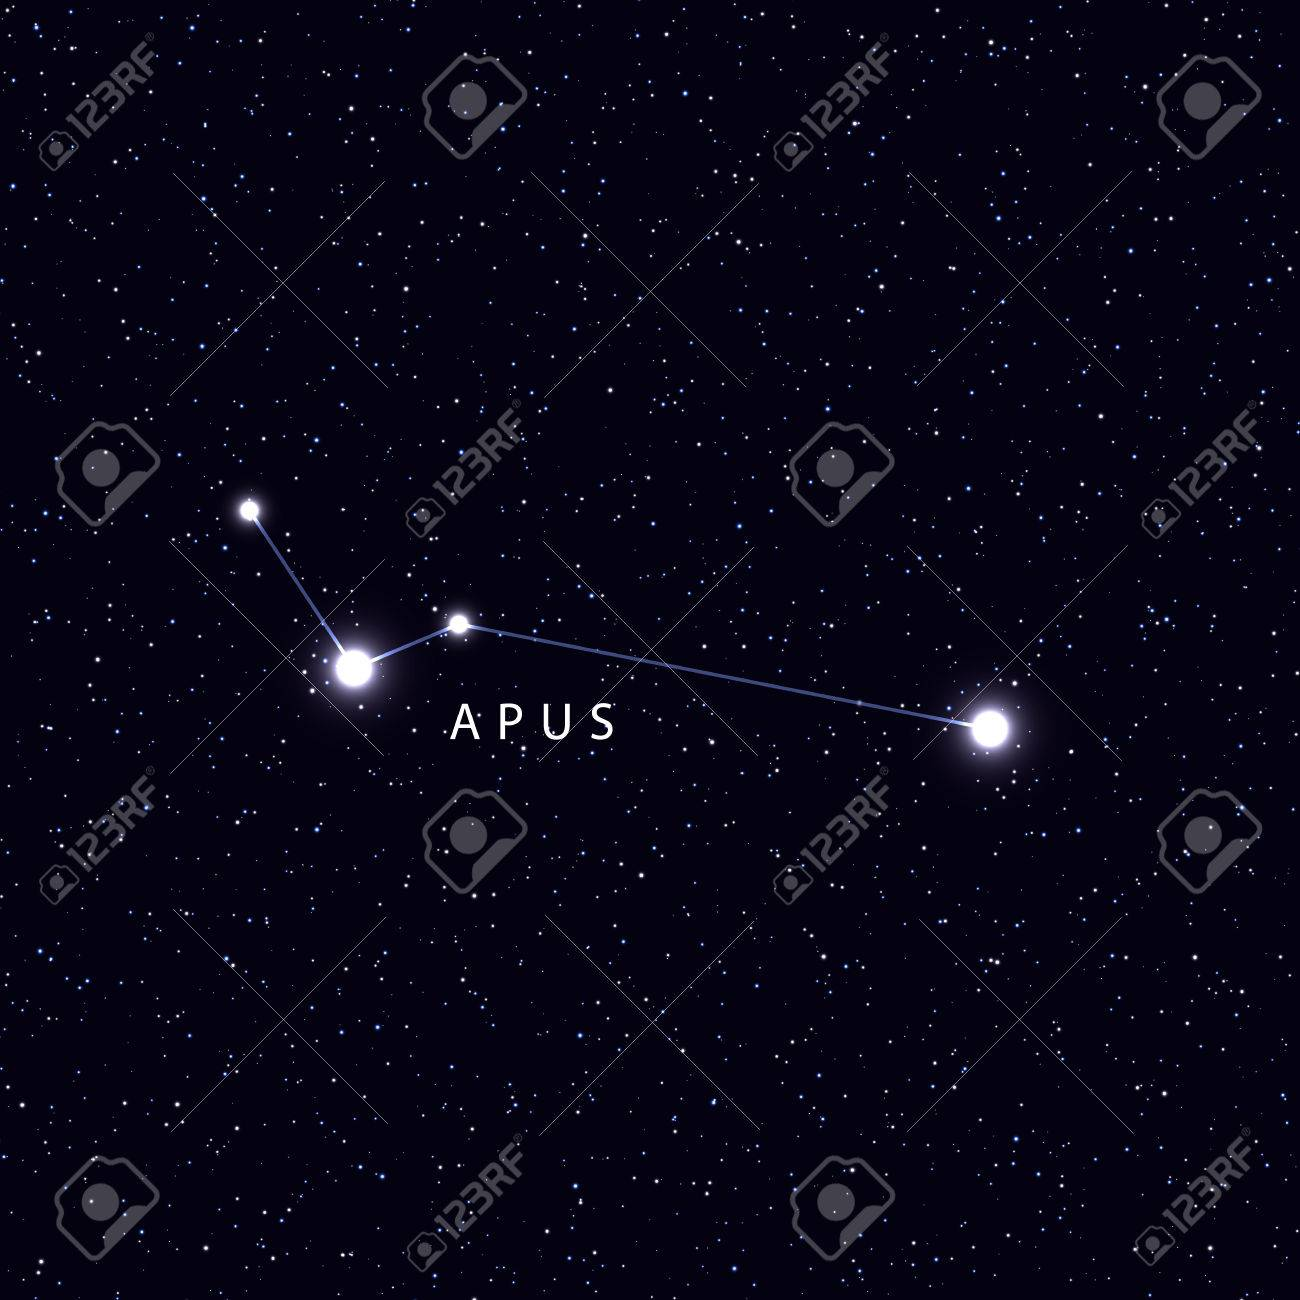 sky map with the name of the stars and constellations astronomical symbol constellation apus stock